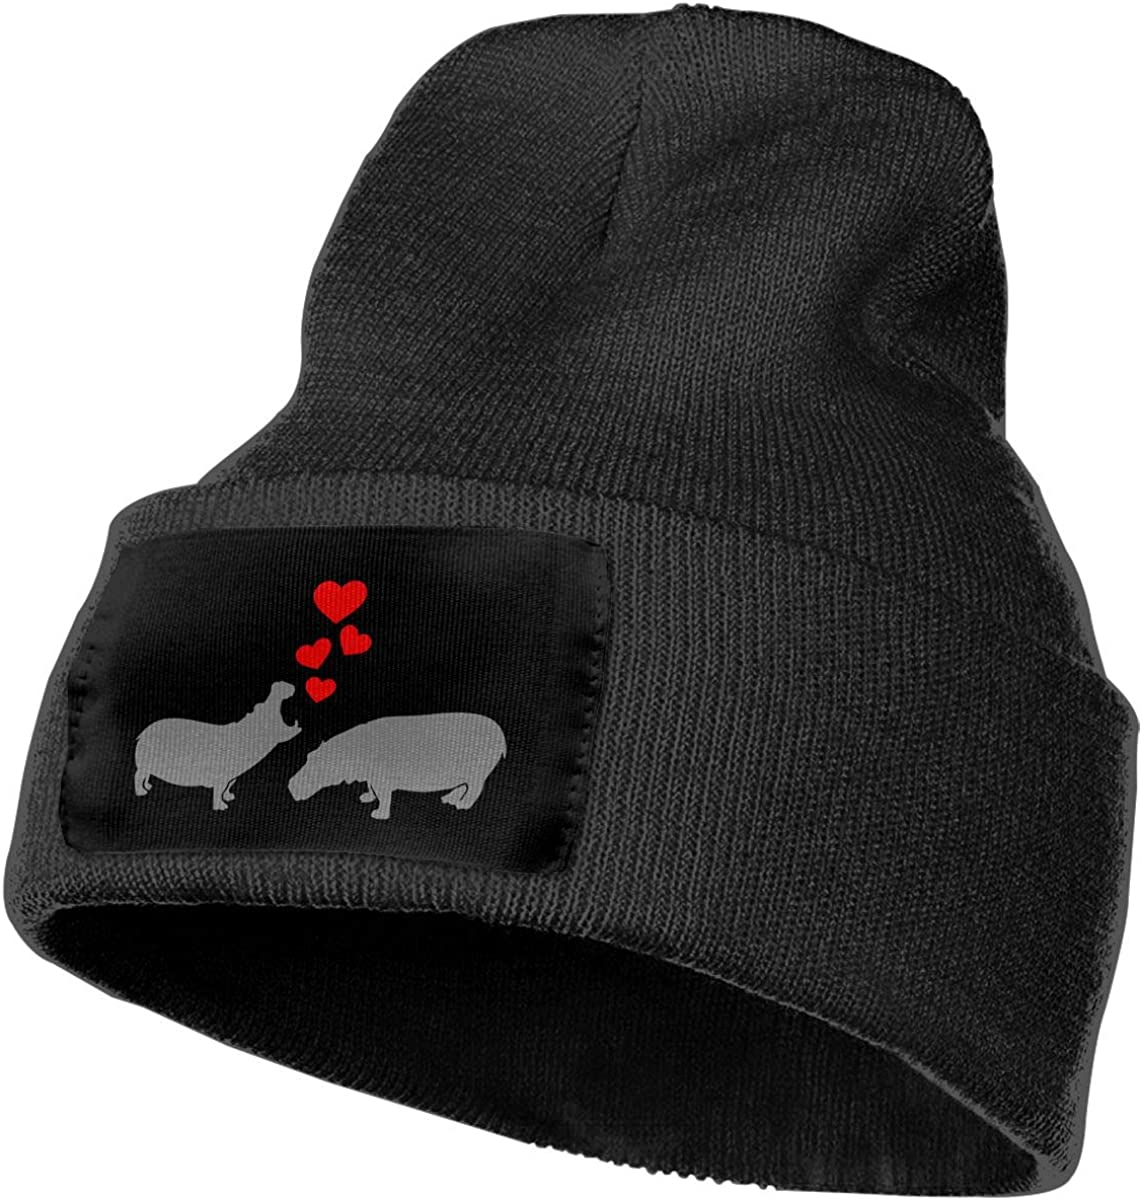 Unisex Hippos in Love Outdoor Stretch Knit Beanies Hat Soft Winter Skull Caps